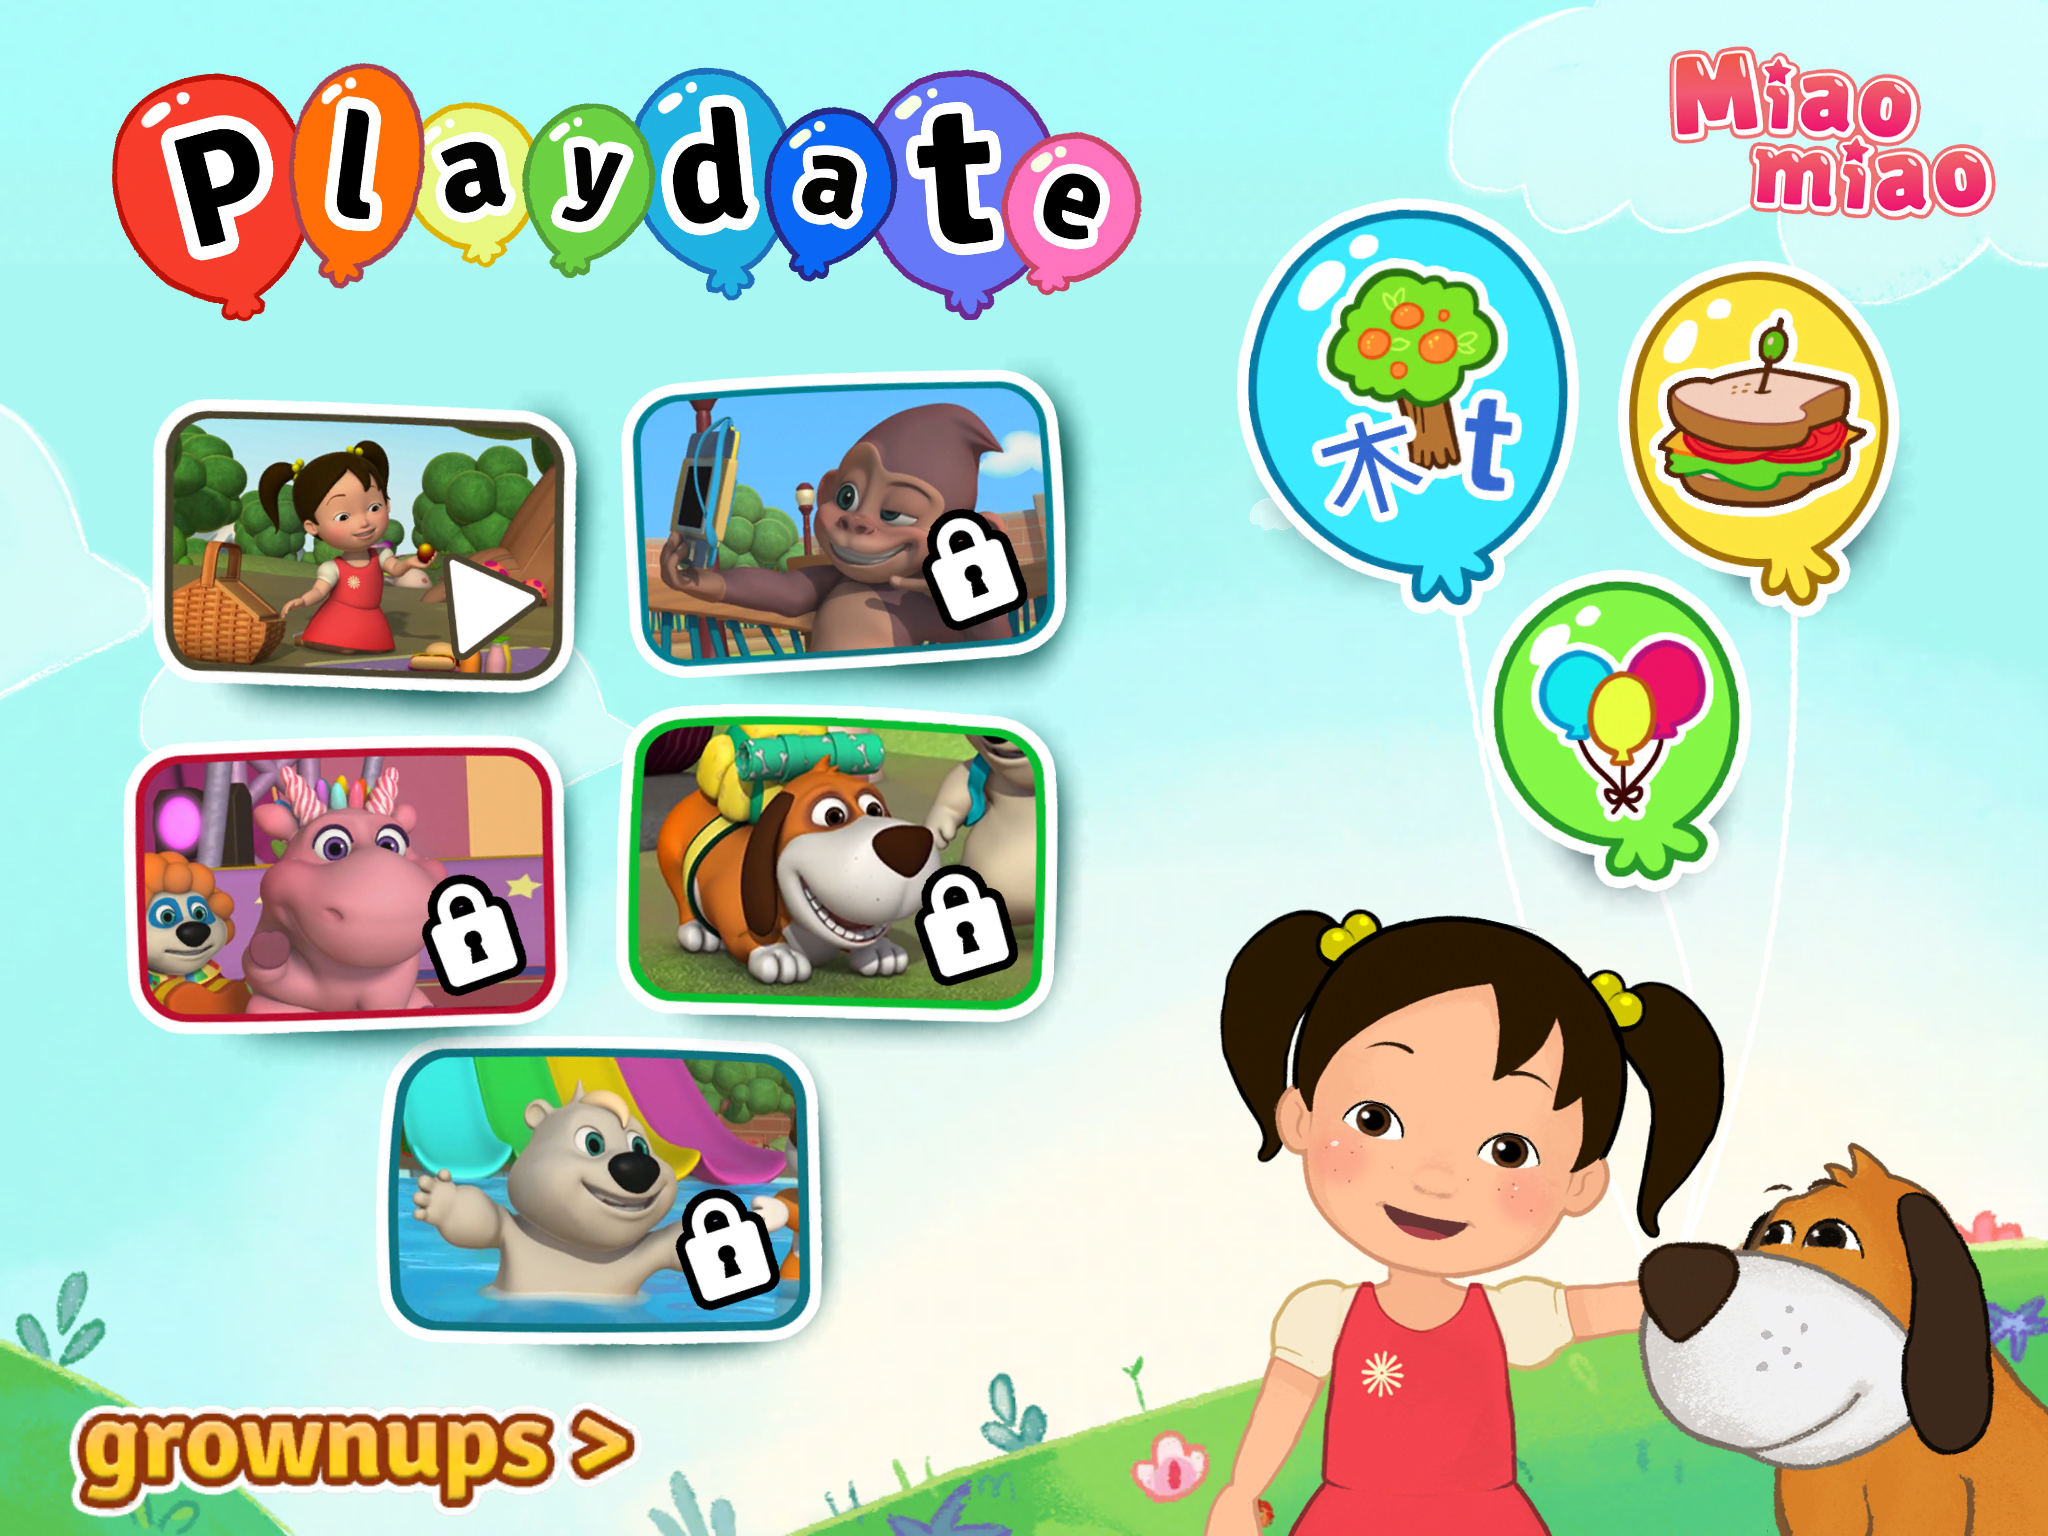 New Preschool Animated Series Miaomiao makes its debut appearance in the new app Playdate with Miaomiao